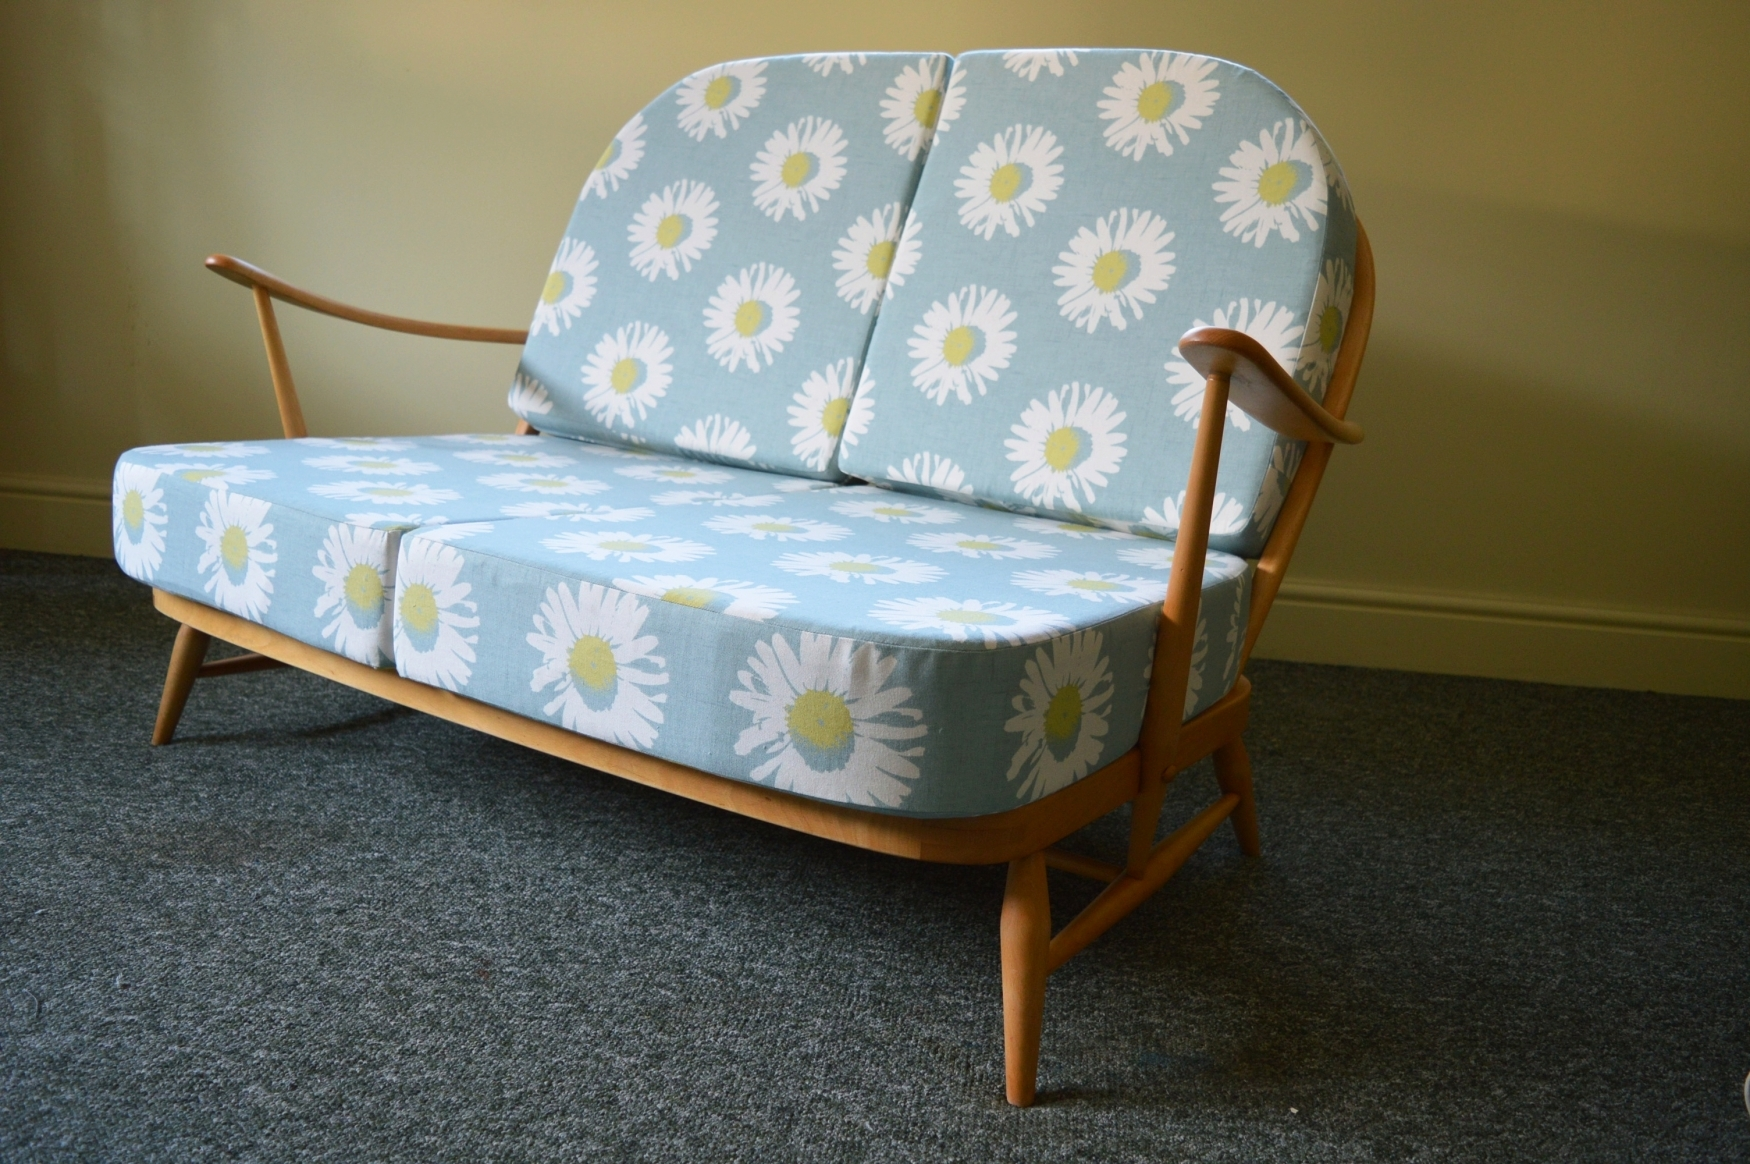 ercol-vintage-windsor-two-seat-sofa-compact-design-with-bright-bold-daisy-print